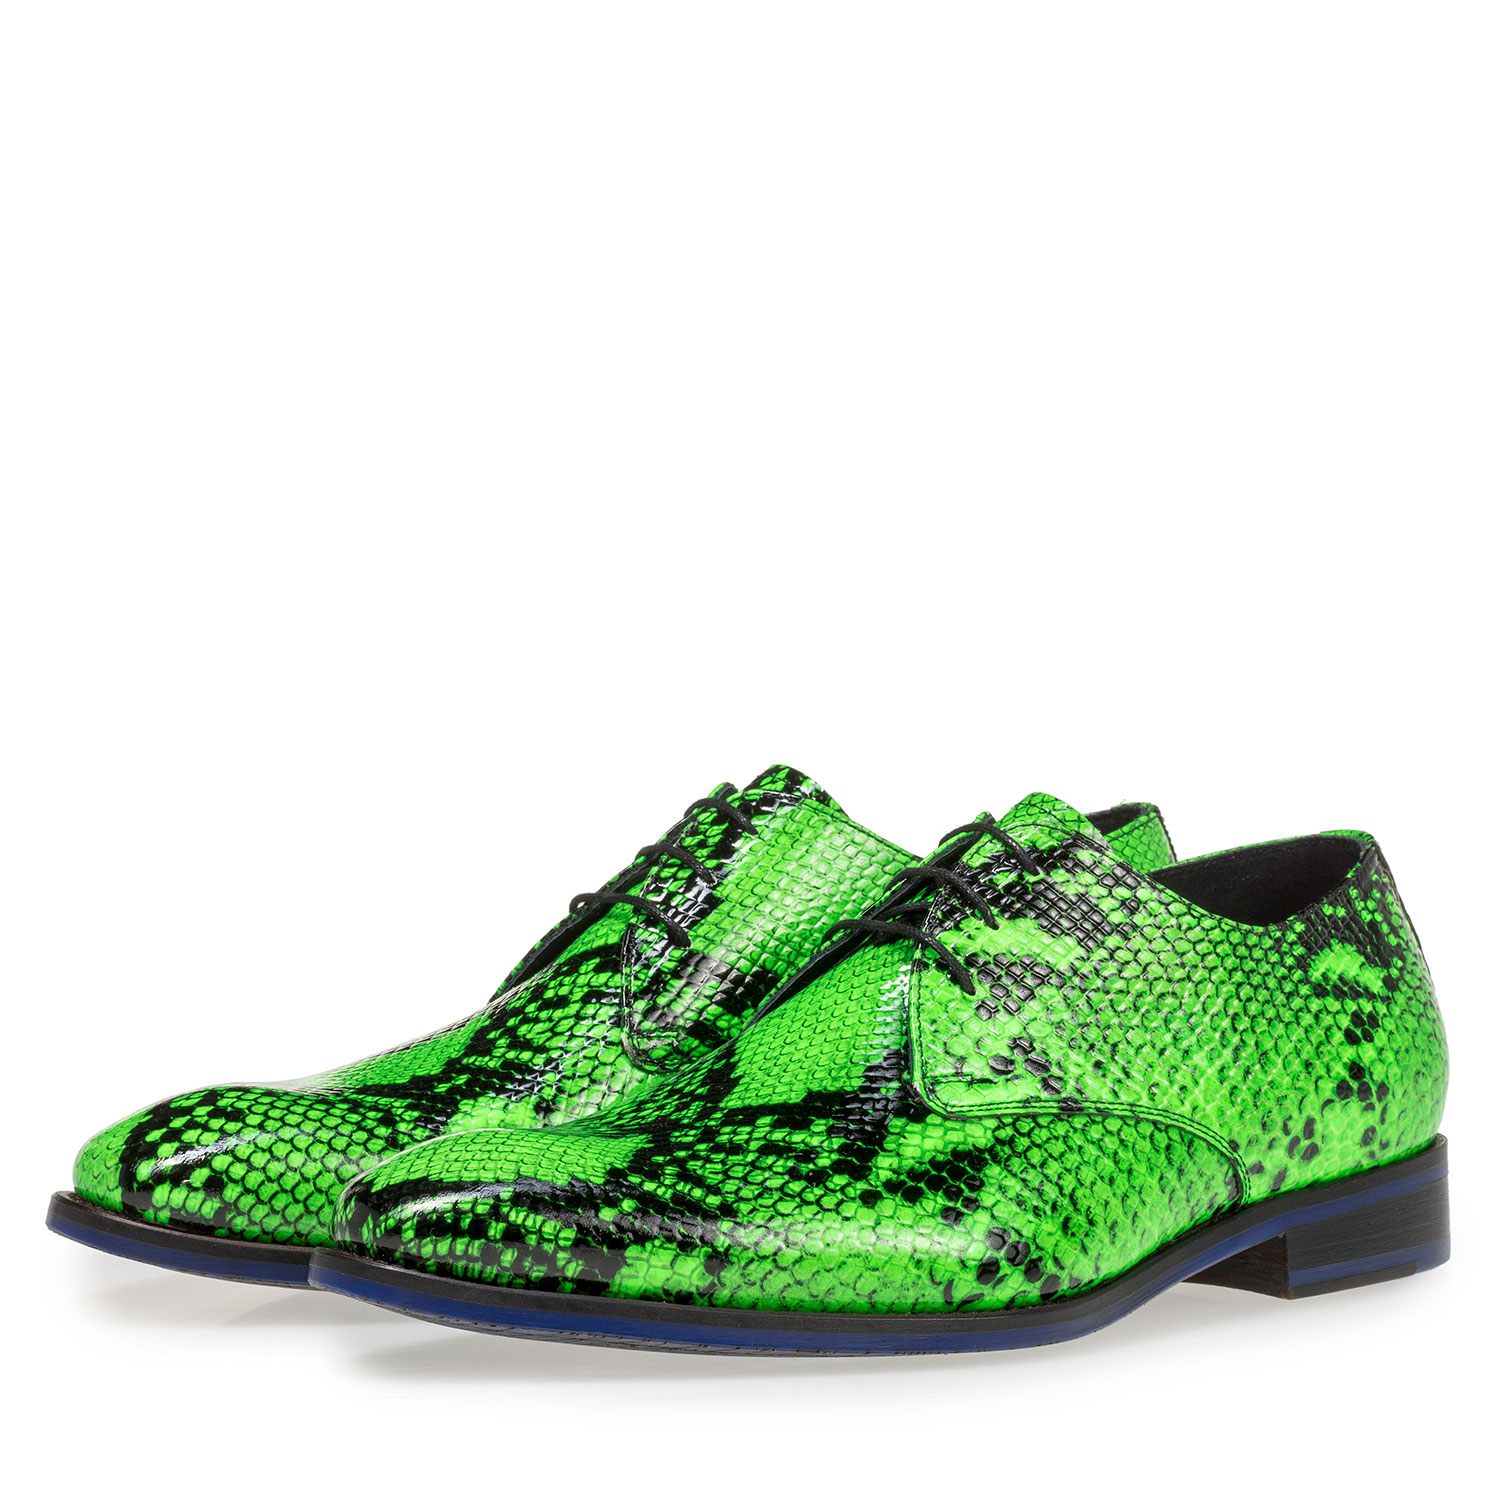 18124/06 - Premium fluorescent green leather lace shoe with snake print